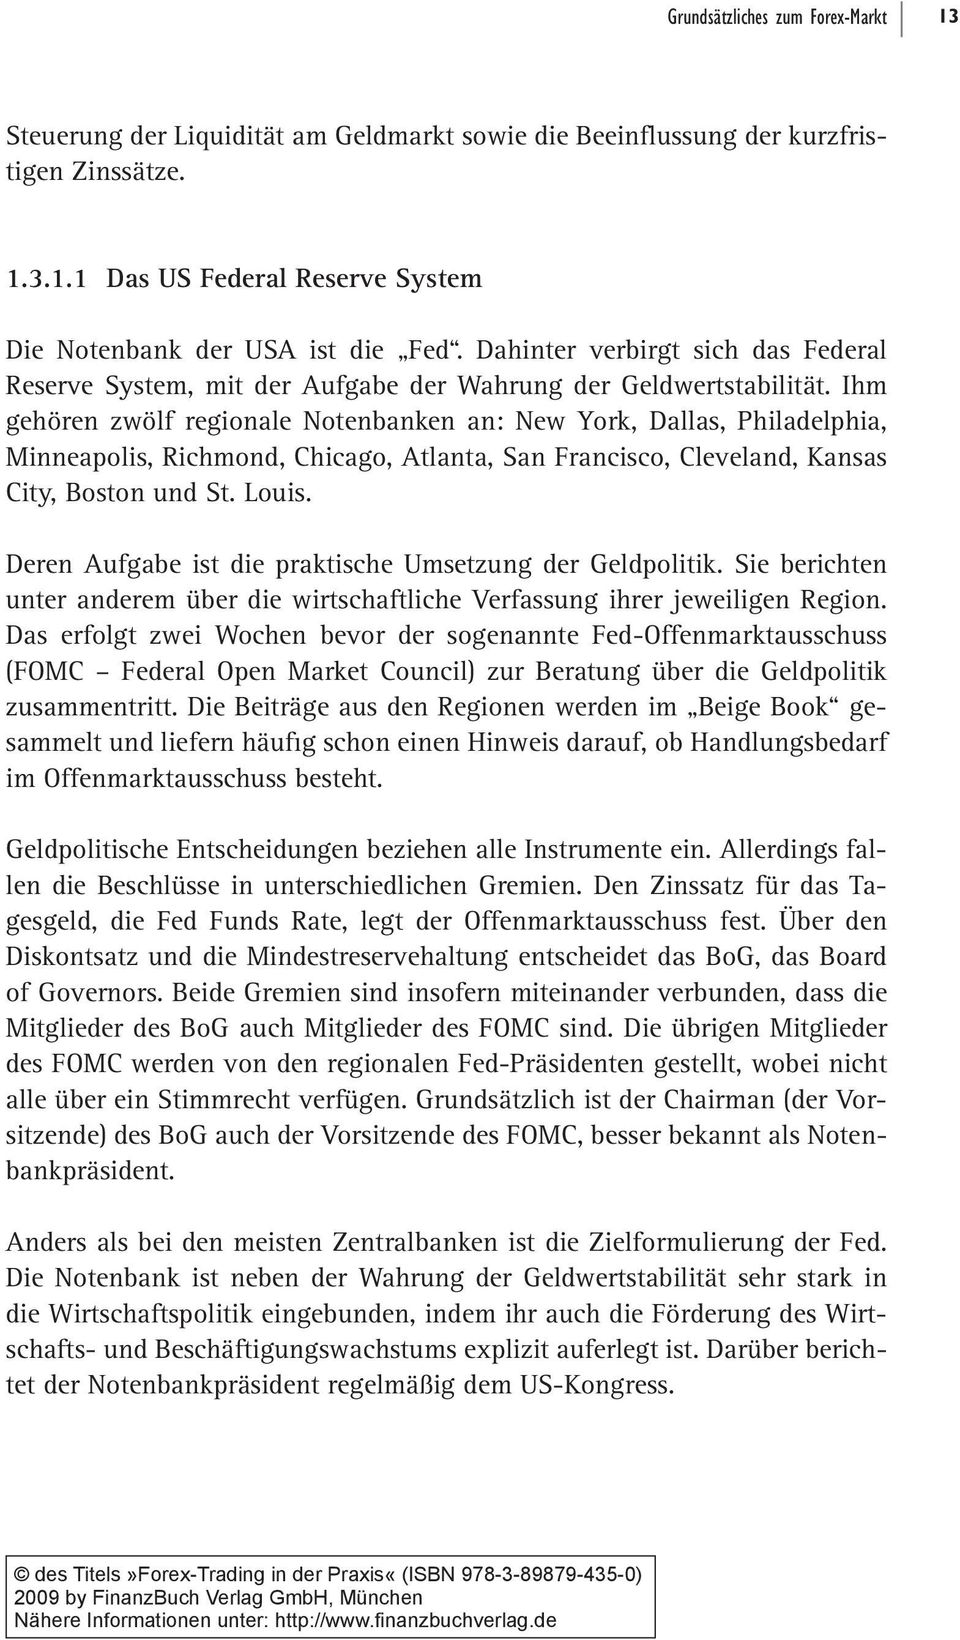 Ihm gehören zwölf regionale Notenbanken an: New York, Dallas, Philadelphia, Minneapolis, Richmond, Chicago, Atlanta, San Francisco, Cleveland, Kansas City, Boston und St. Louis.